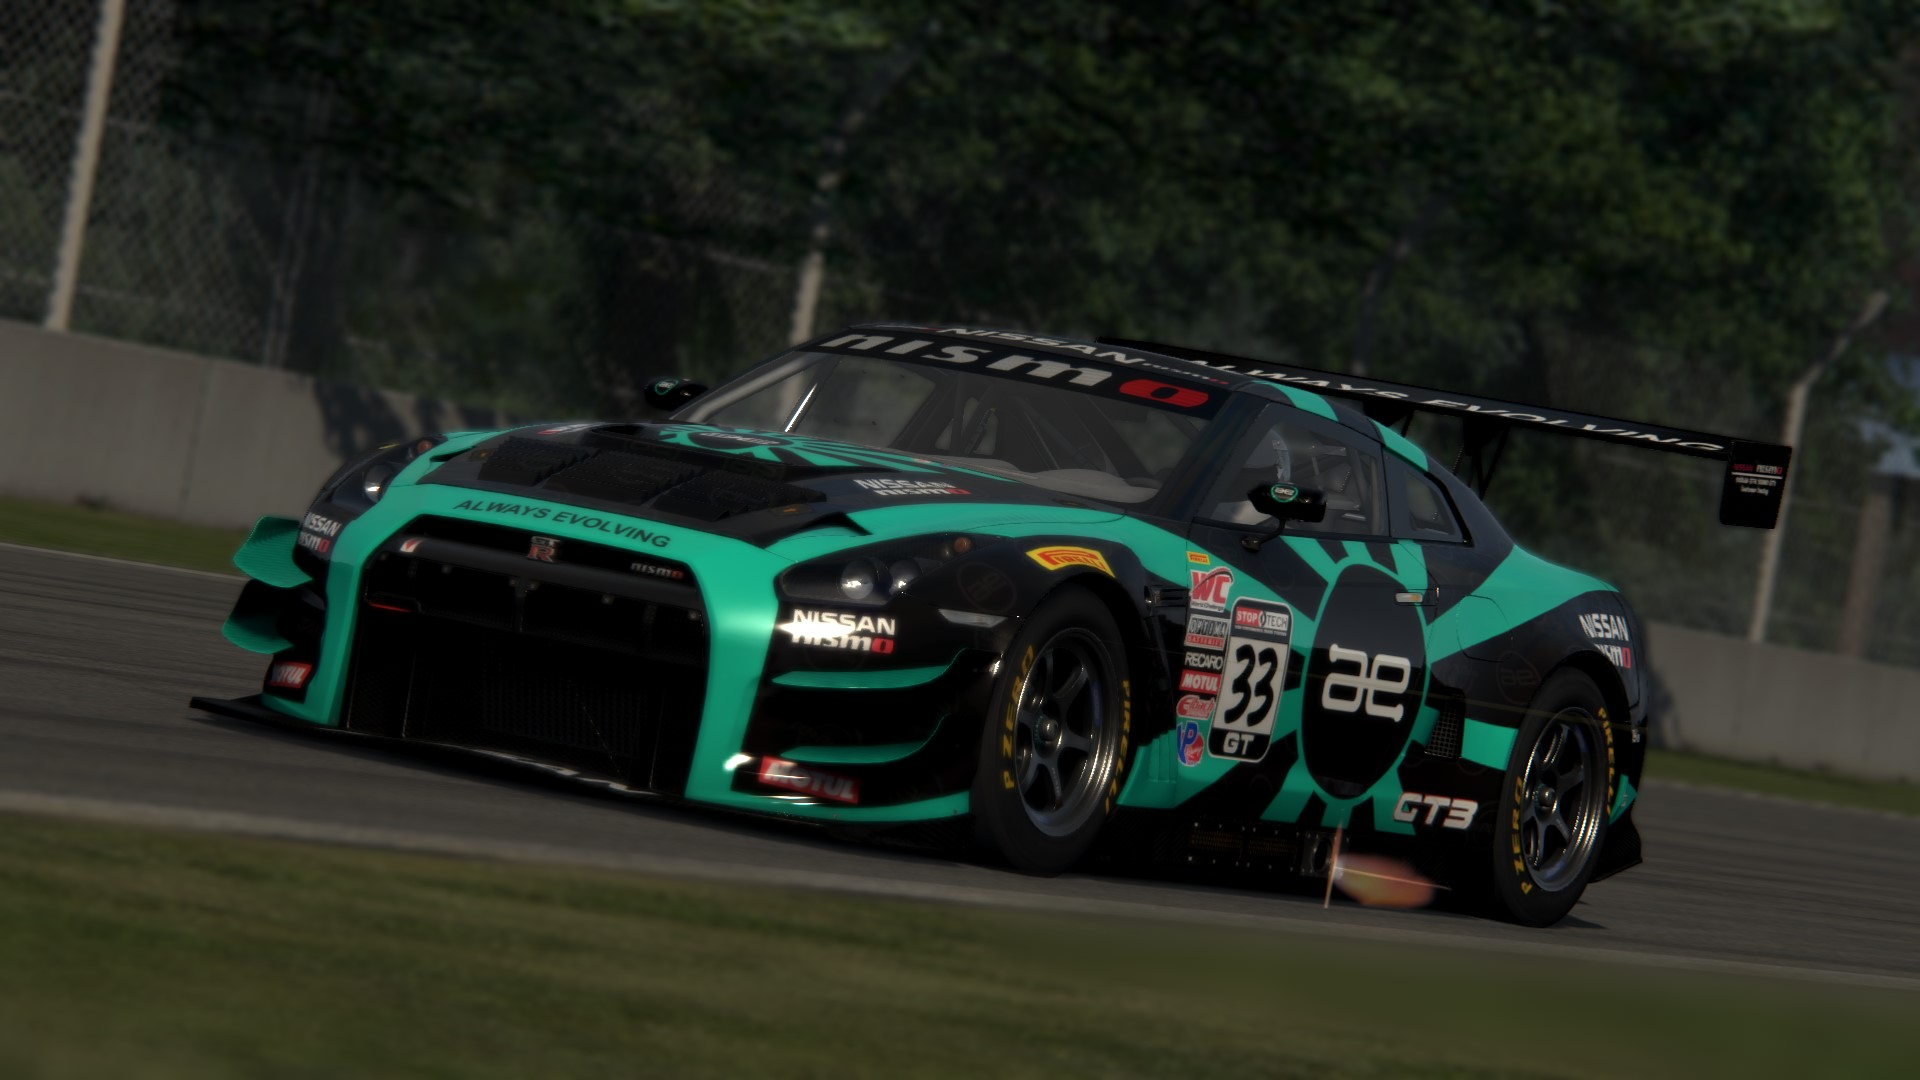 Screenshot_ks_nissan_gtr_gt3_roadamerica_2.5_17-3-115-0-6-33.jpg